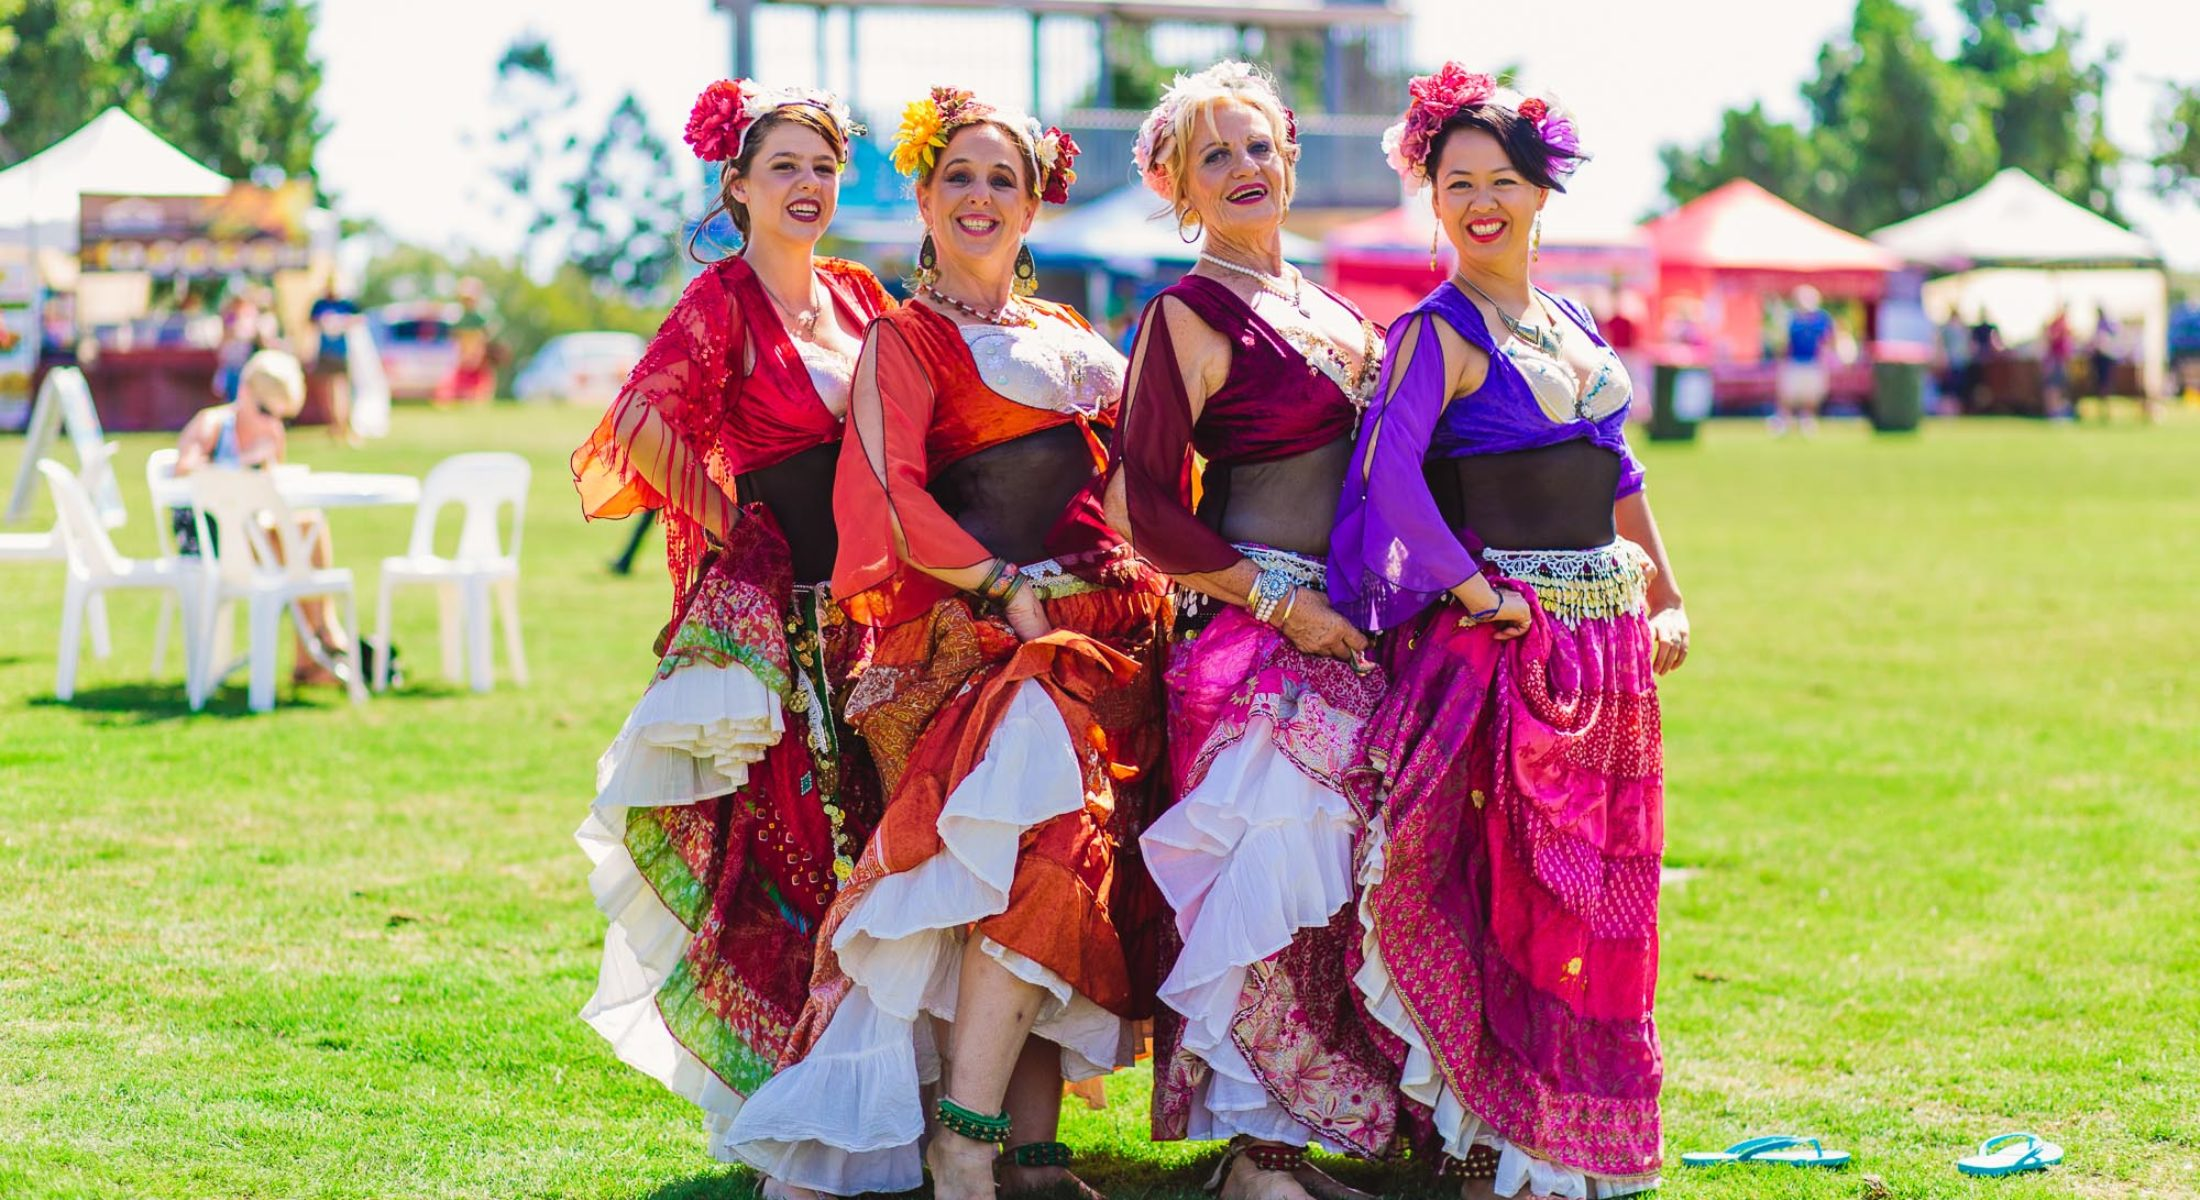 Enjoy the colours, sounds and sights of the Moreton Bay Multicultural Fiesta